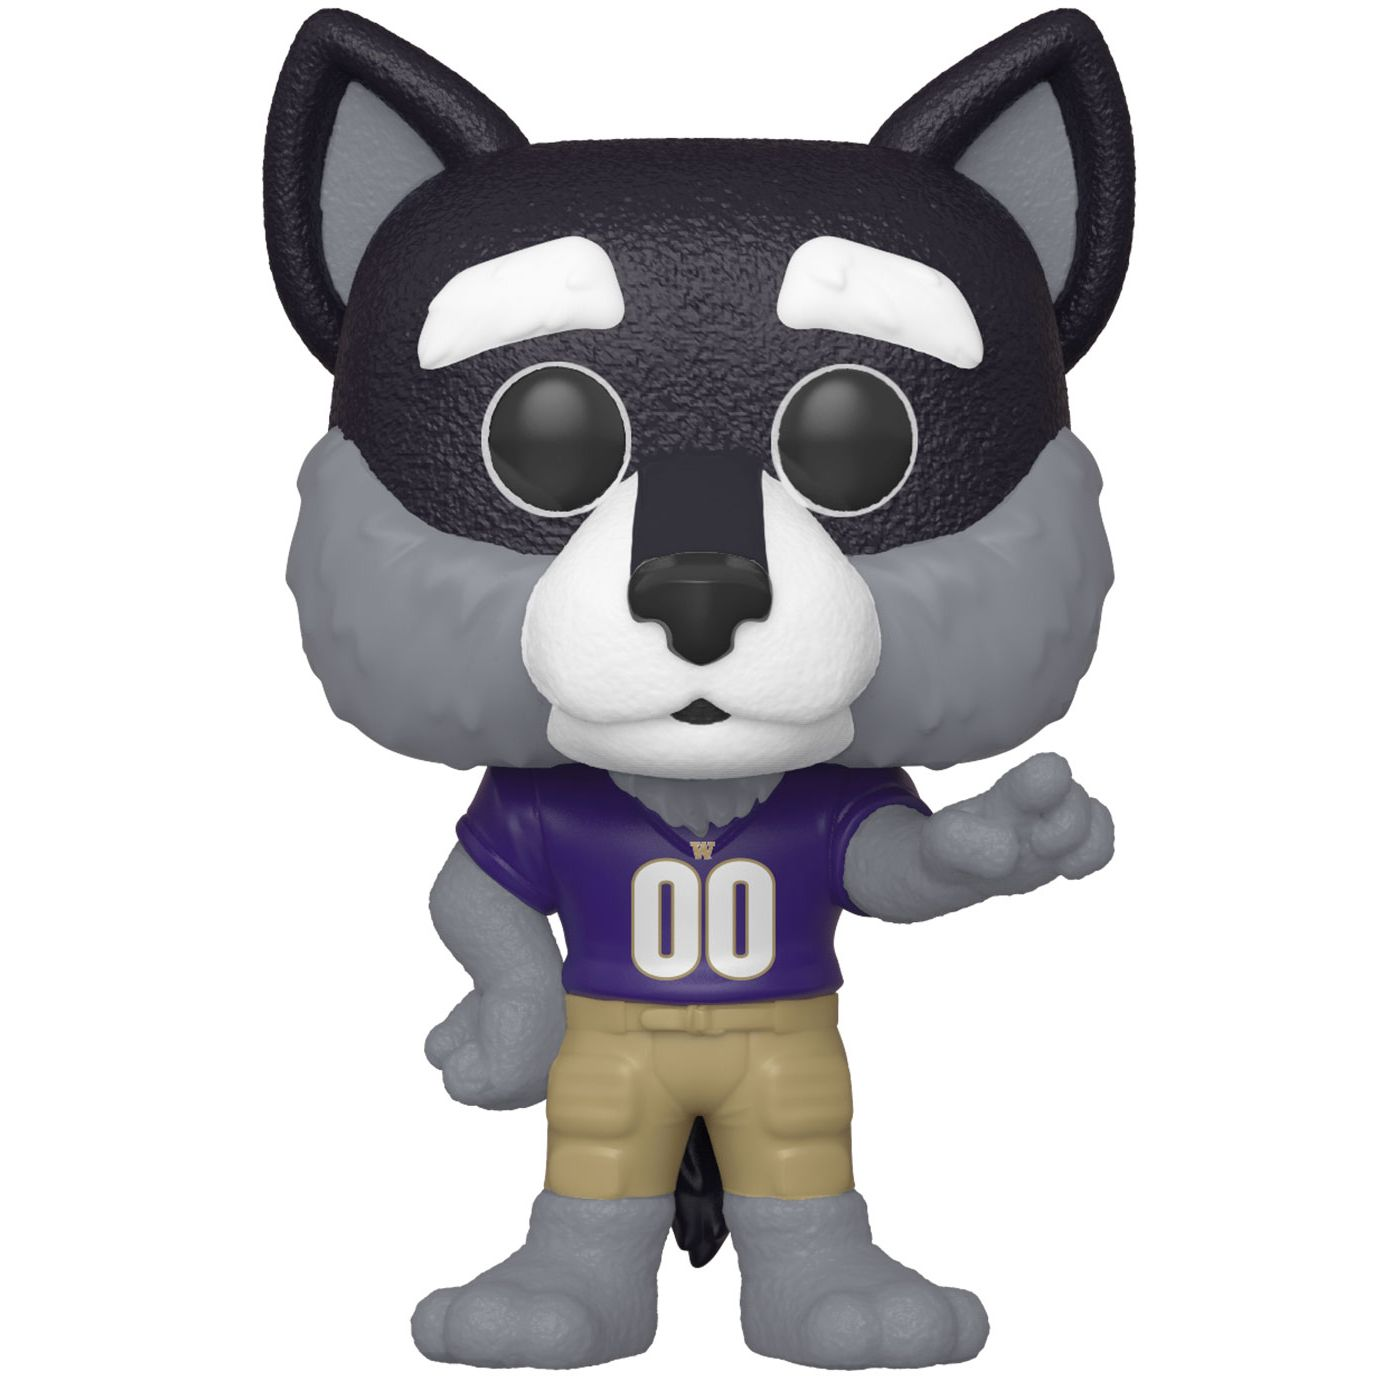 Funko POP! Washington Huskies Mascot Figure